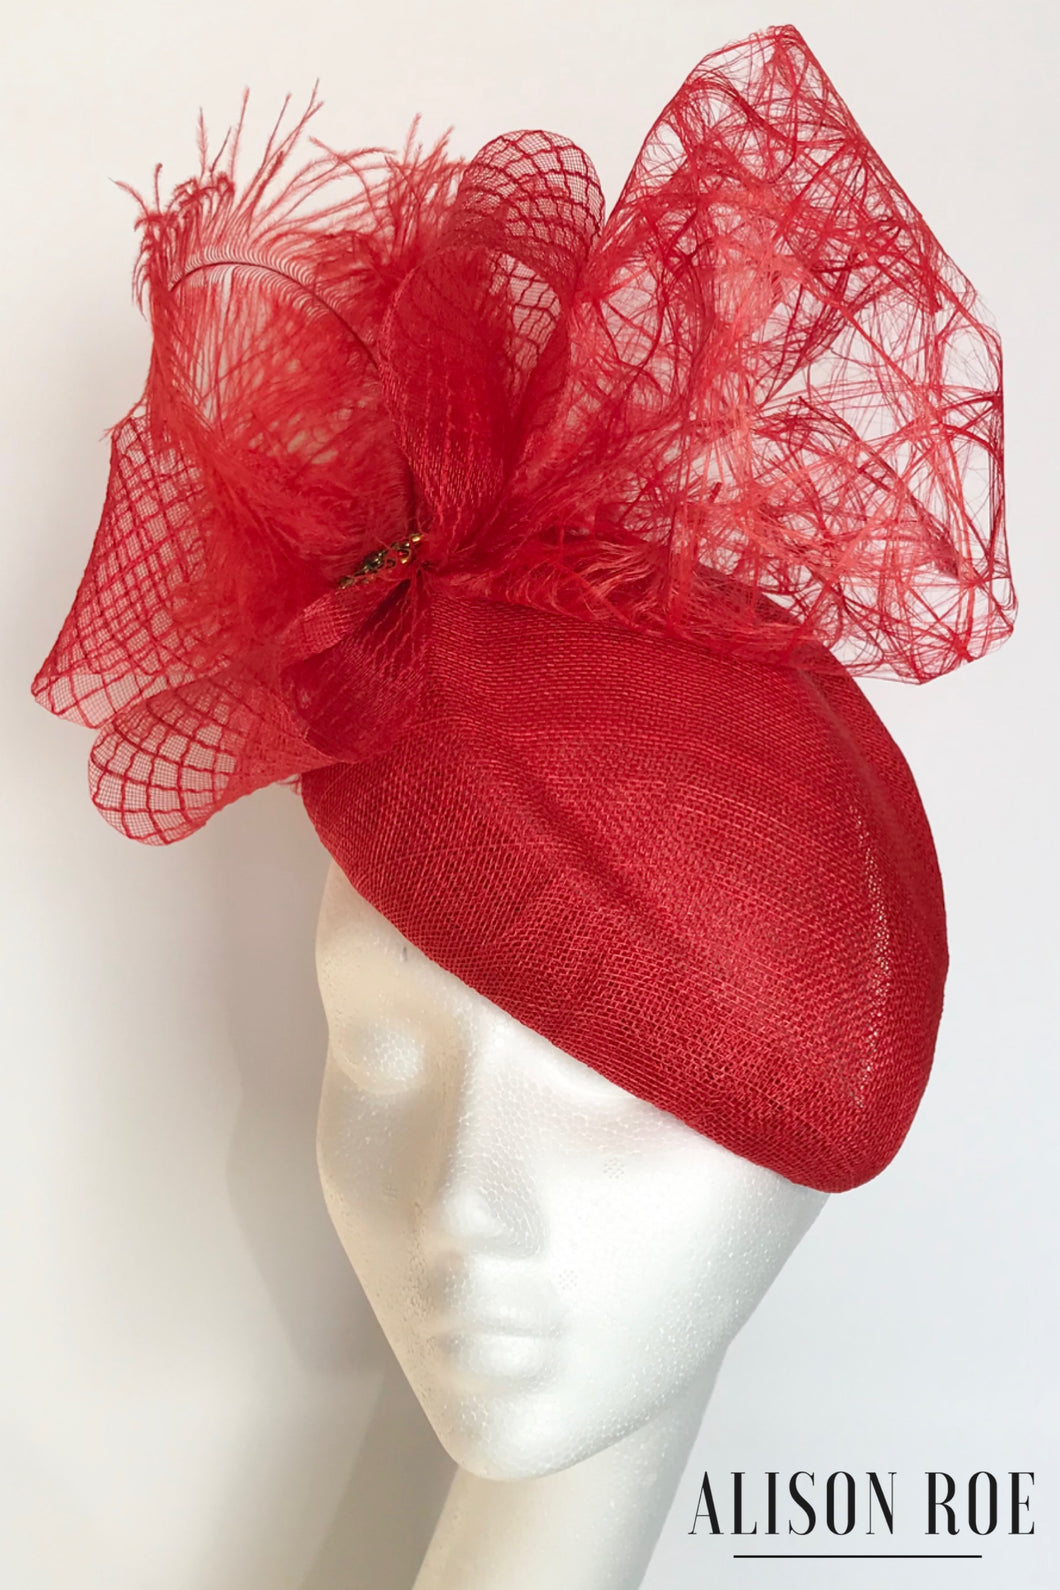 Red teardrop headpiece